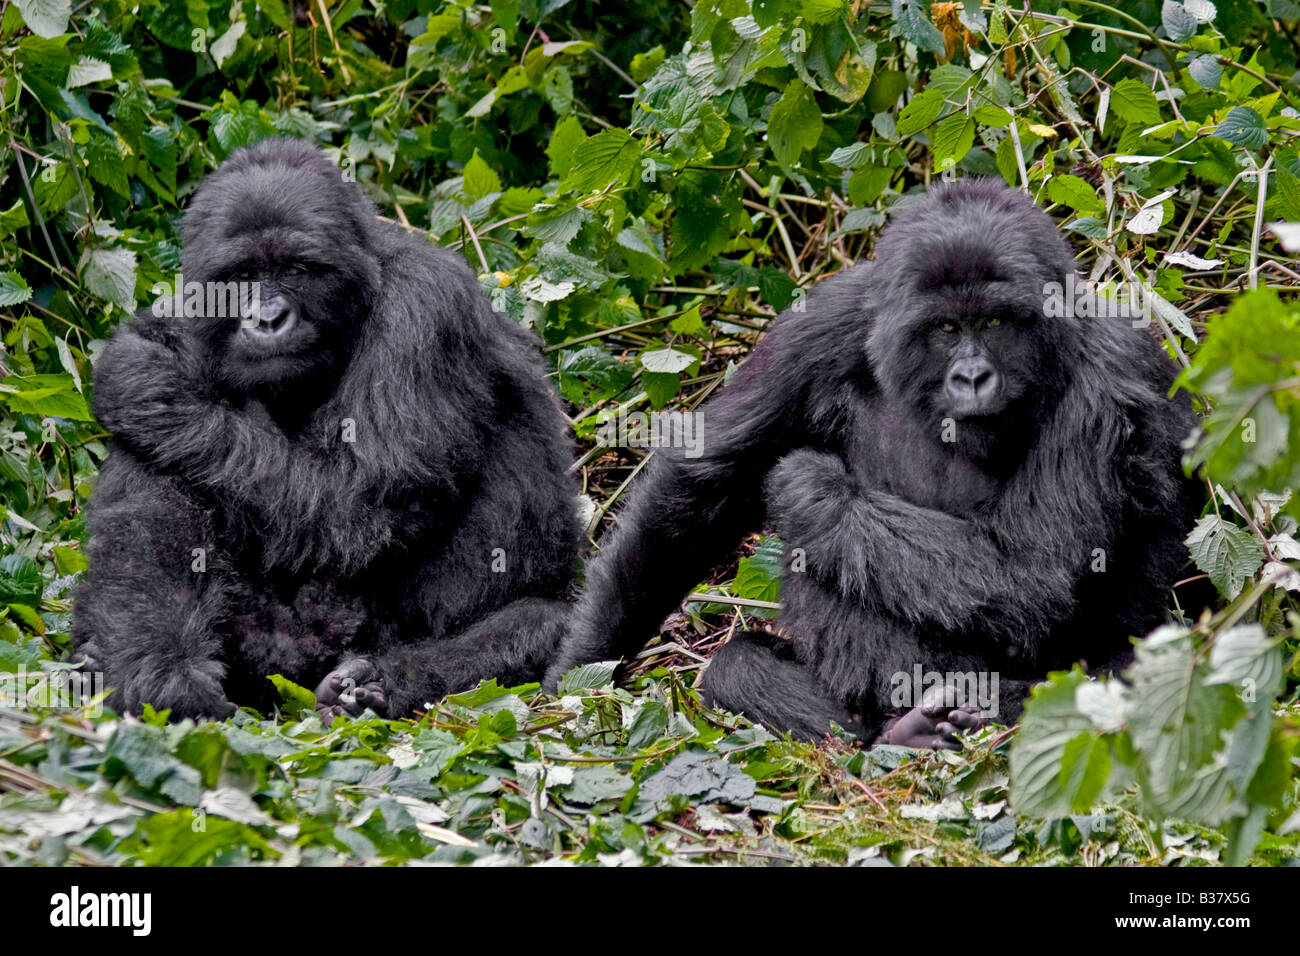 Two brother MOUNTAIN GORILLAS Gorilla beringei beringei of the KWITONDA GROUP in VOLCANOES NATIONAL PARK relax in - Stock Image